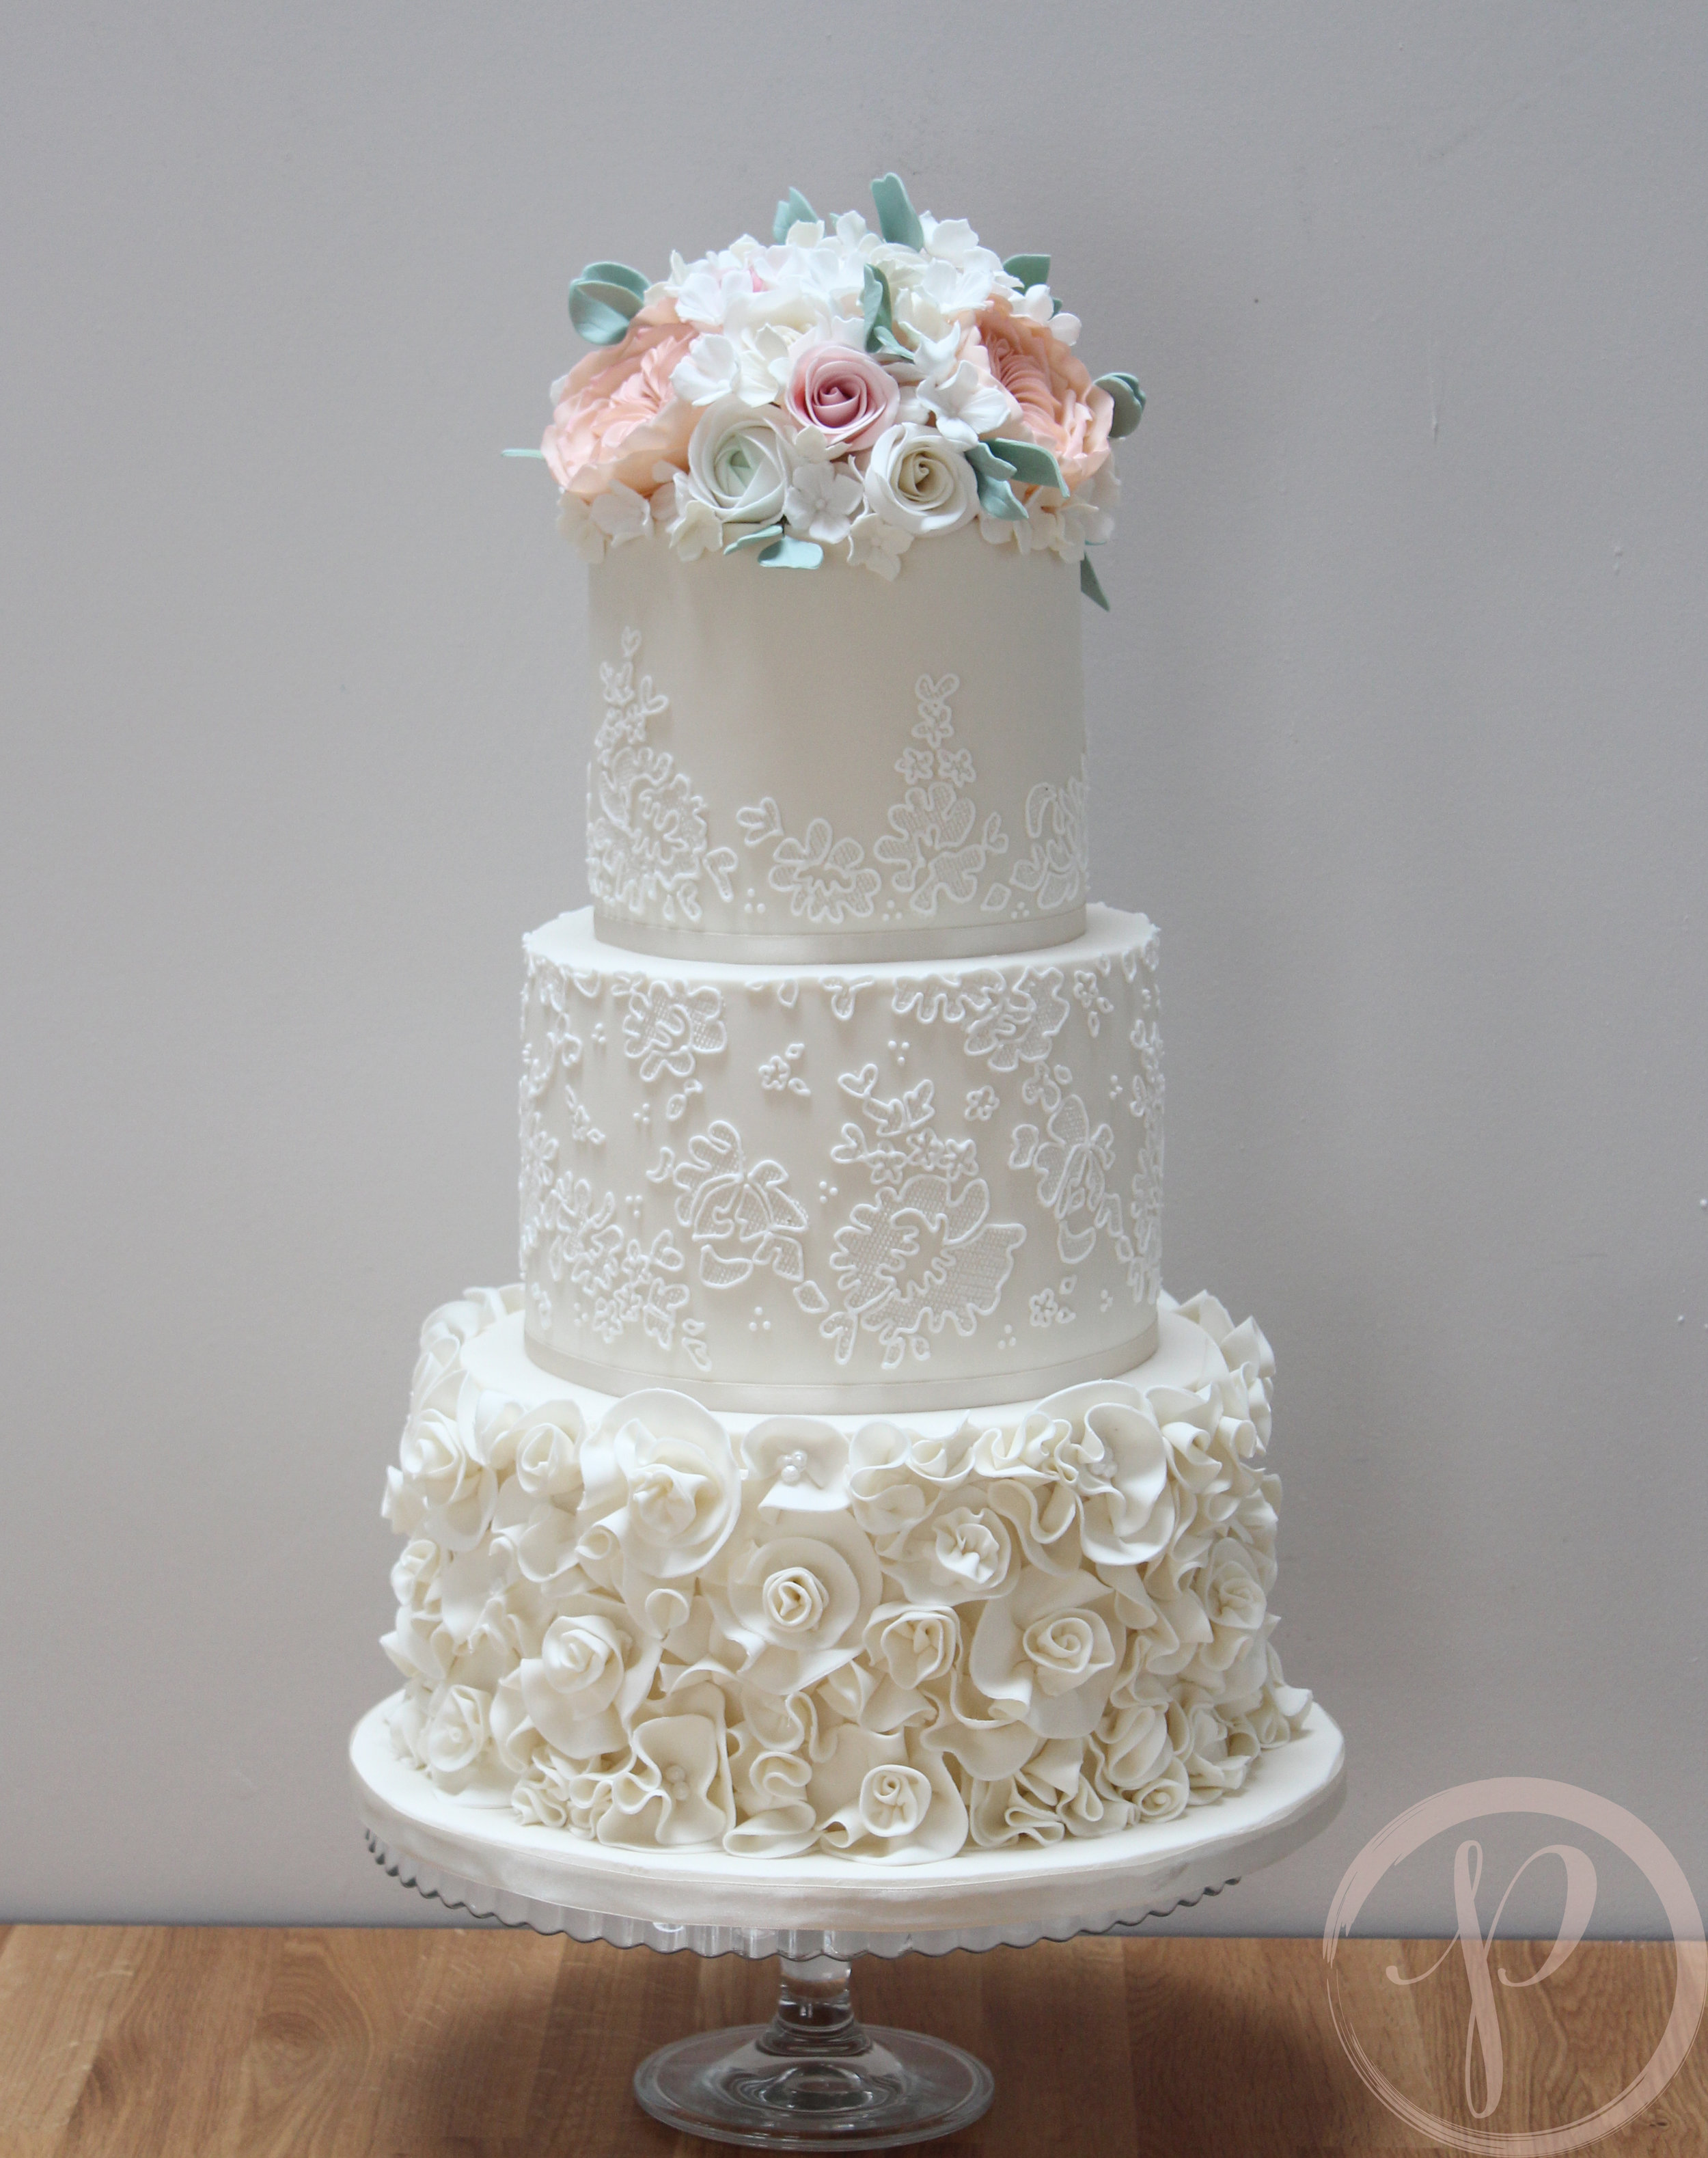 ruffle and lace wedding cake with sugar flowers.jpg